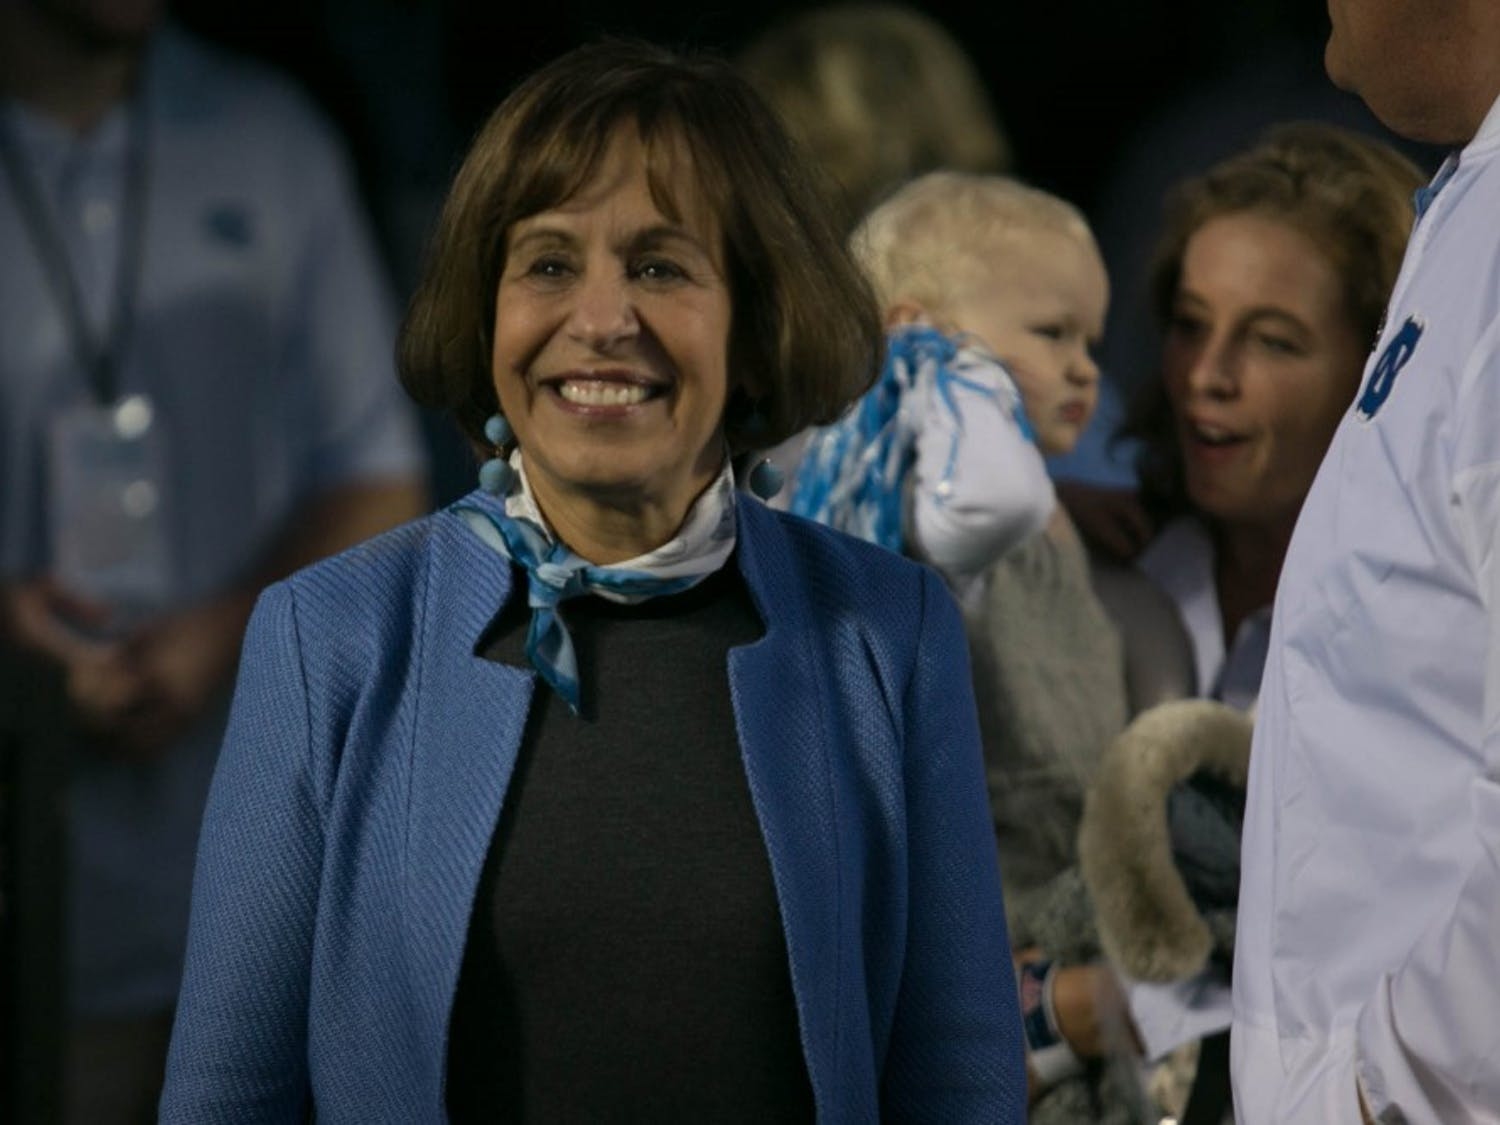 Chancellor Carol Folt attends the UNC football game against Virginina Tech on Saturday, Oct. 13, 2018 in Kenan Memorial Stadium. Folt announced that she will be stepping down from her position as chancellor in an email sent to the University community on Monday, Jan. 14, 2018.